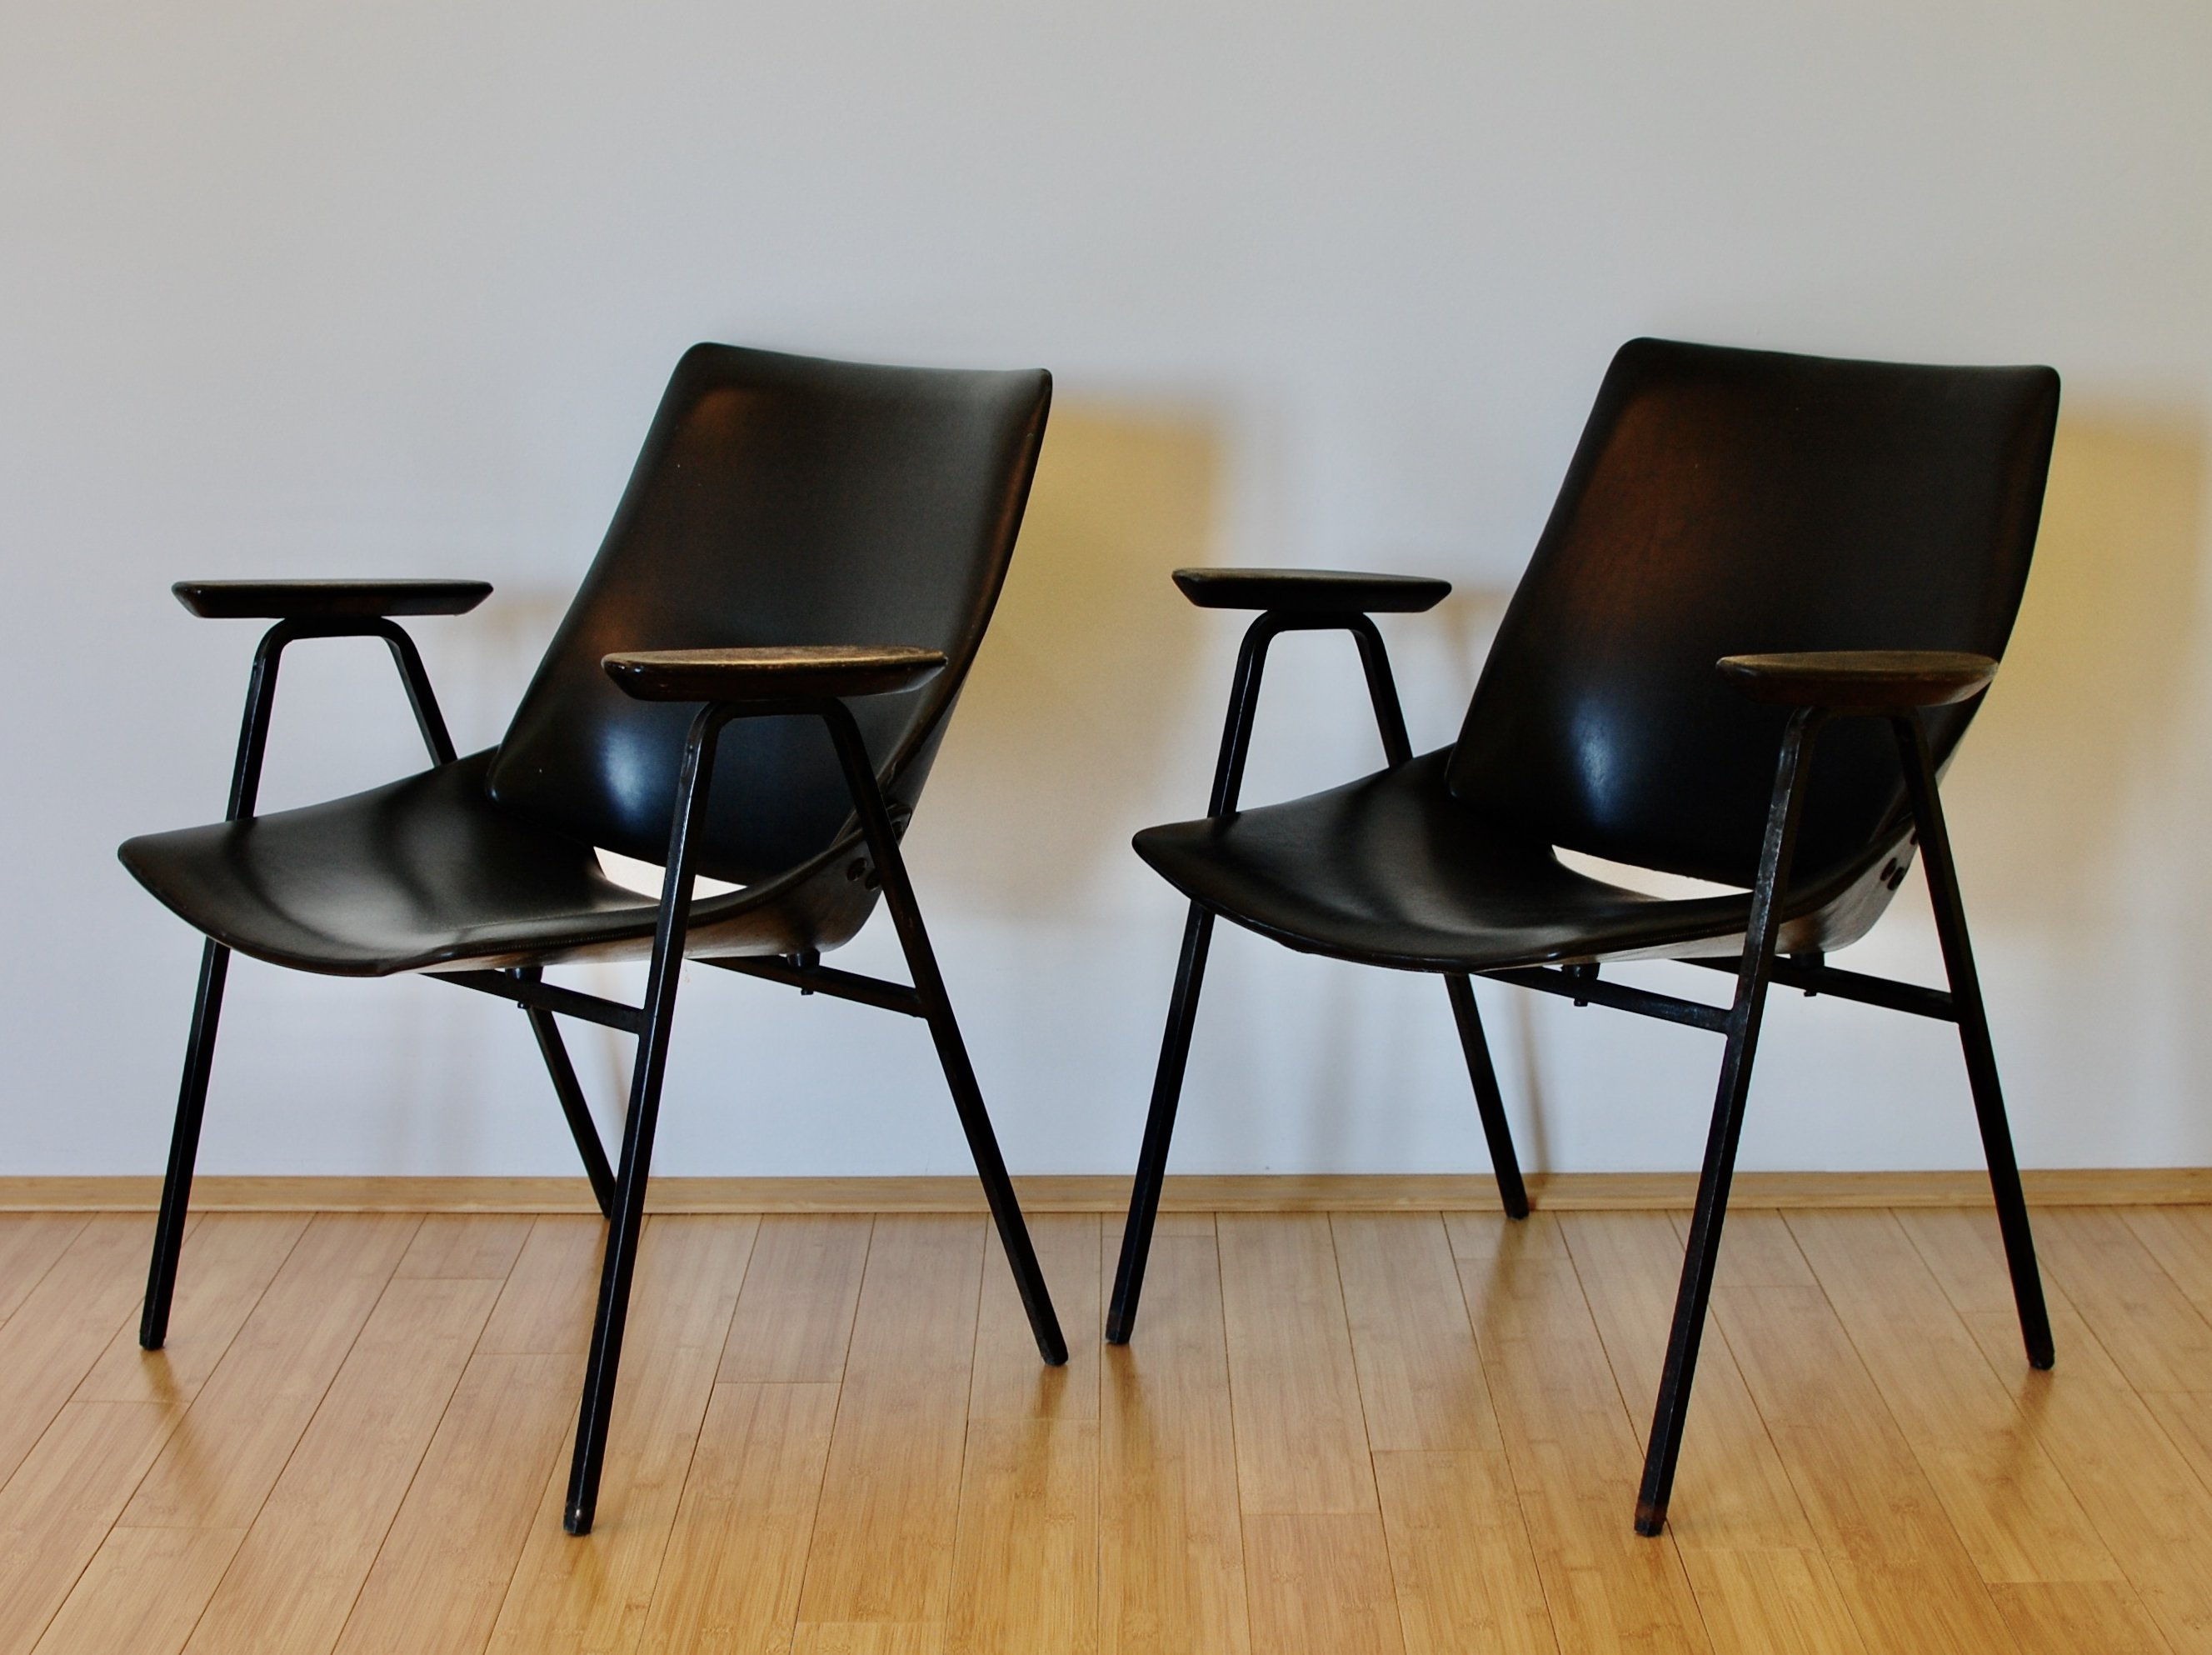 Norteamérica Orgullo Impermeable  Lupina Lounge chair by Niko Kralj, 1950s | #142925